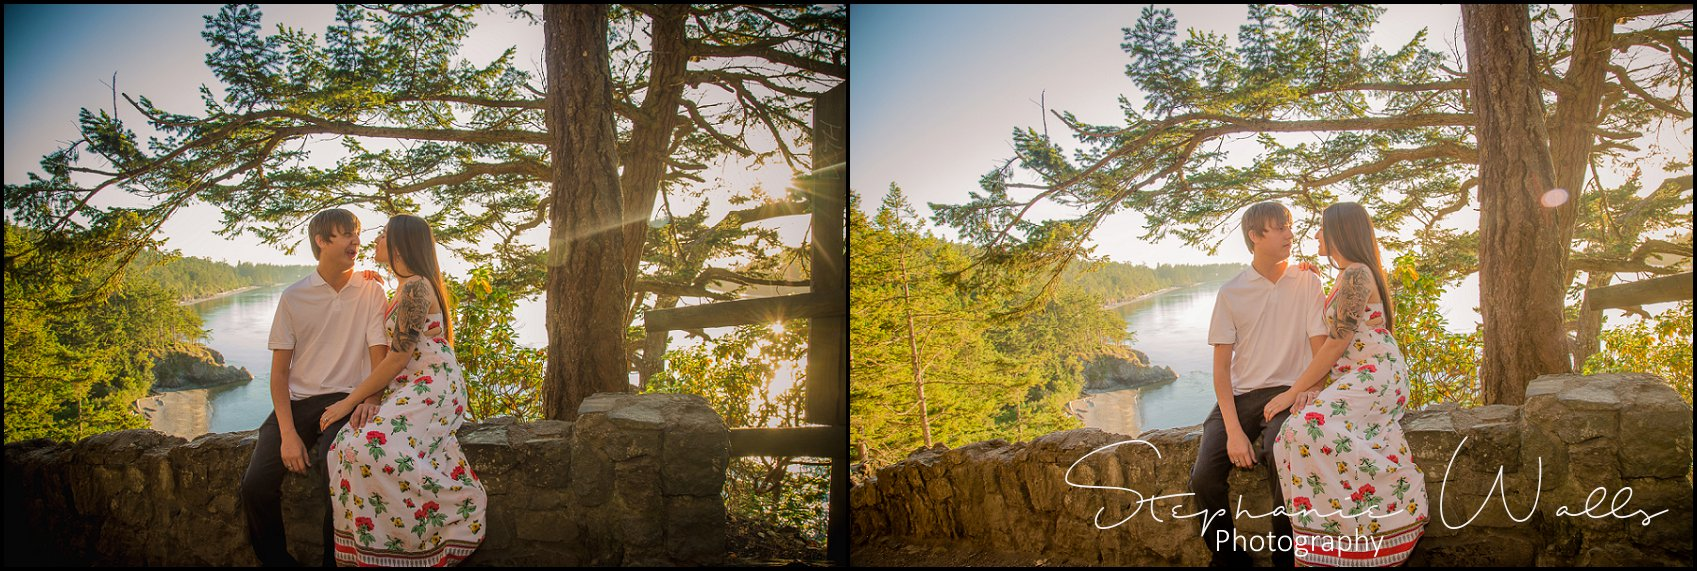 Nataly Marty076 IN A GALAXY FAR FAR AWAY | NATALY & MARTY | DECEPTION PASS ENGAGEMENT SESSION